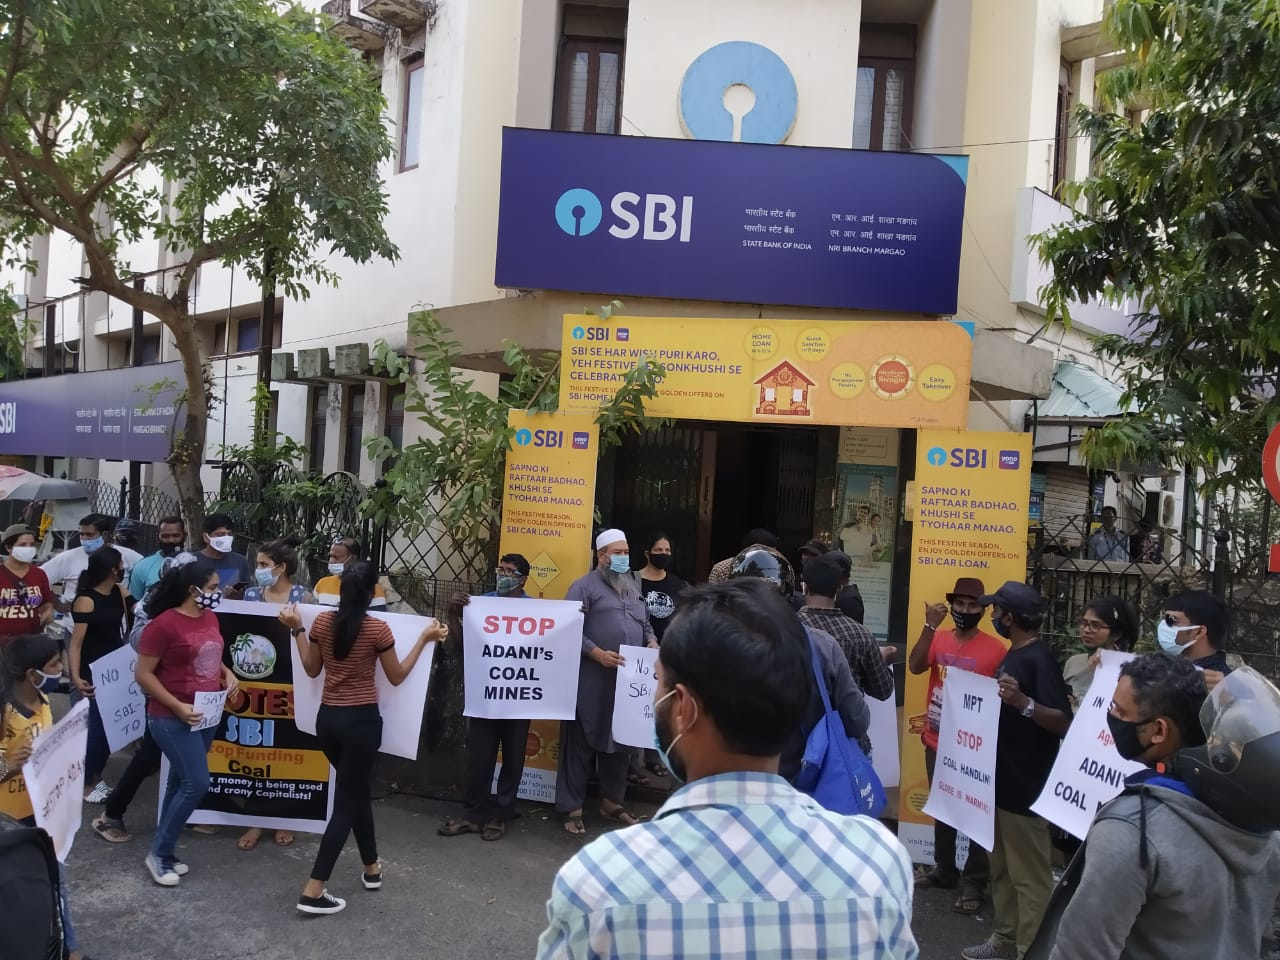 Protesters outside SBI bank in Goa say NO to Adani loan